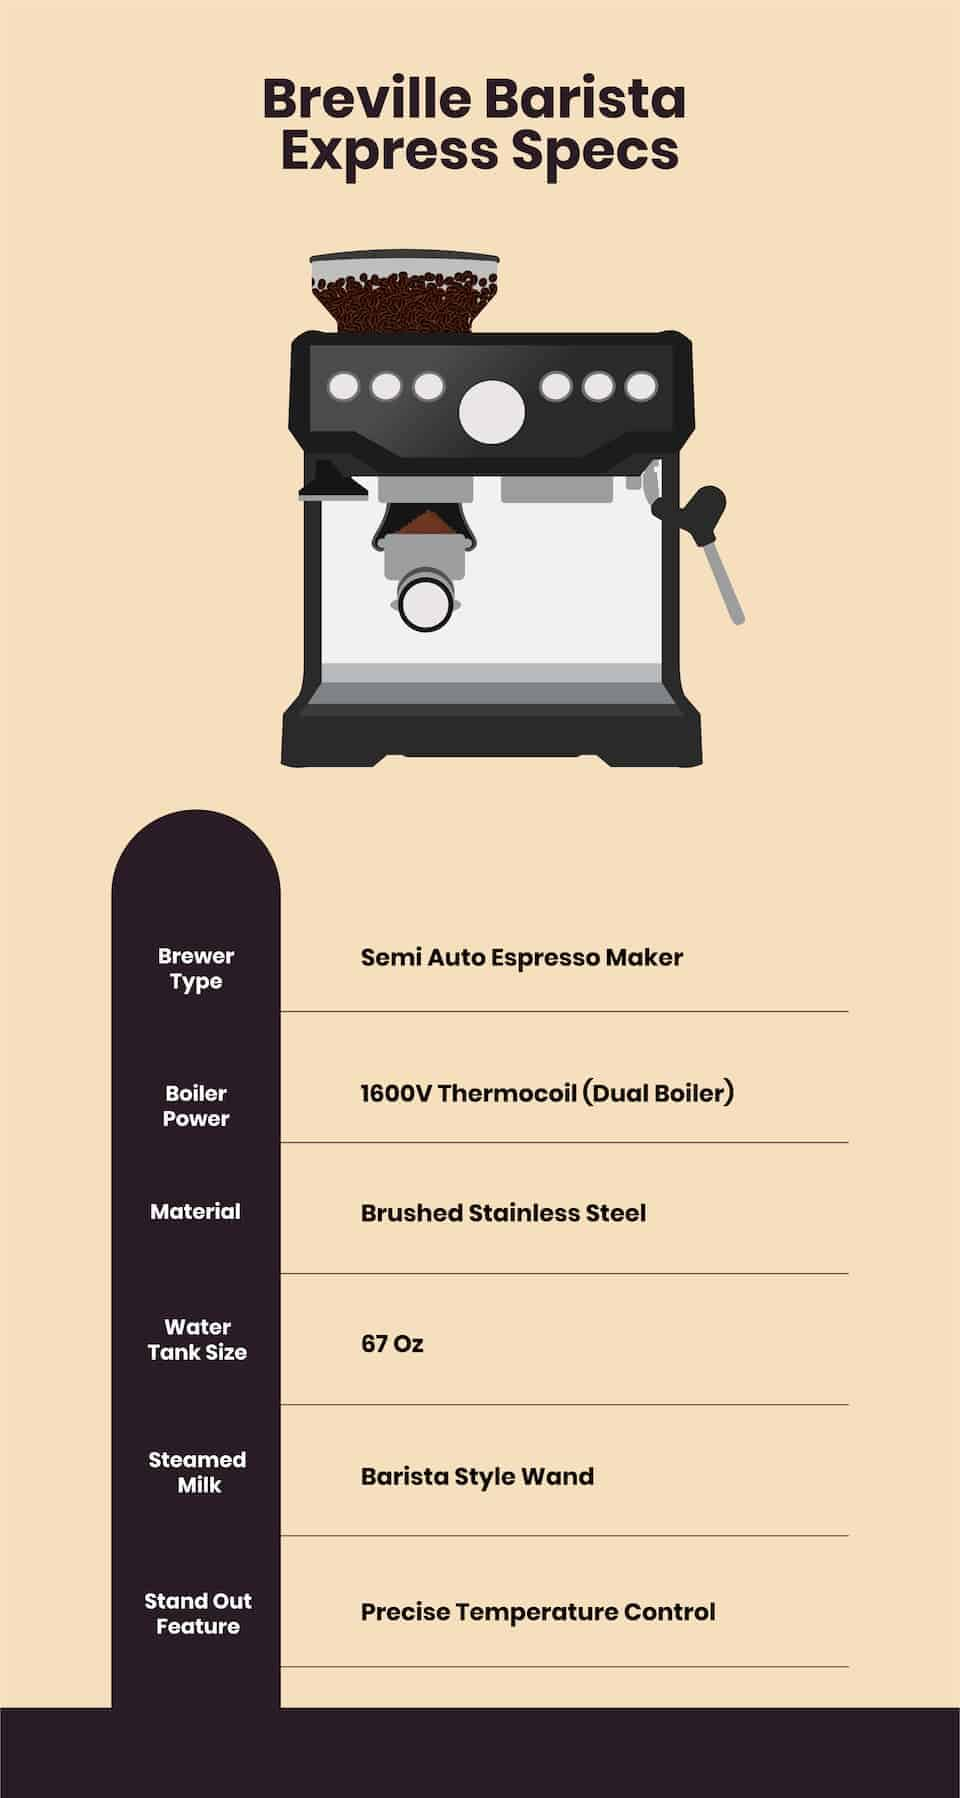 barista express by breville specs infographic